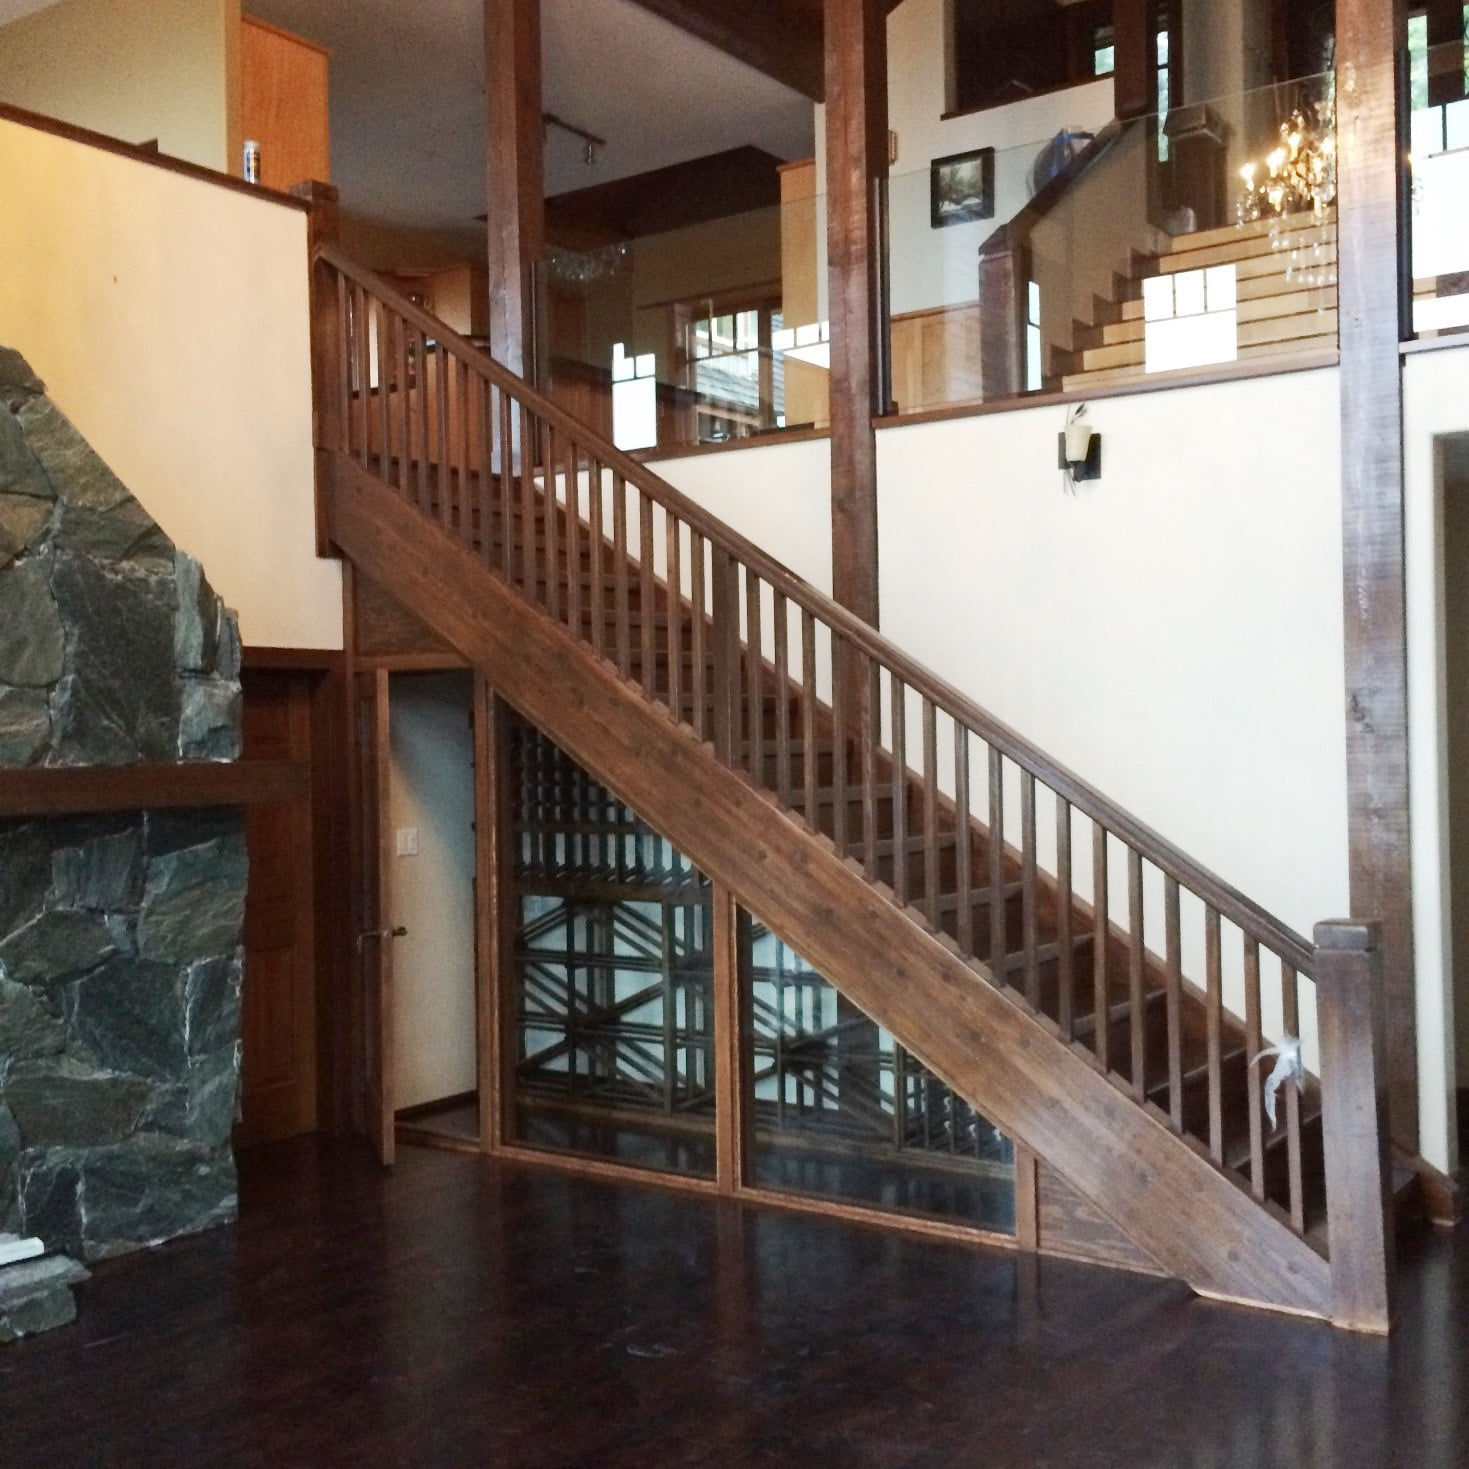 Custom Home Wine Cellar Under the Stairs with Knotty Alder Wine Racks